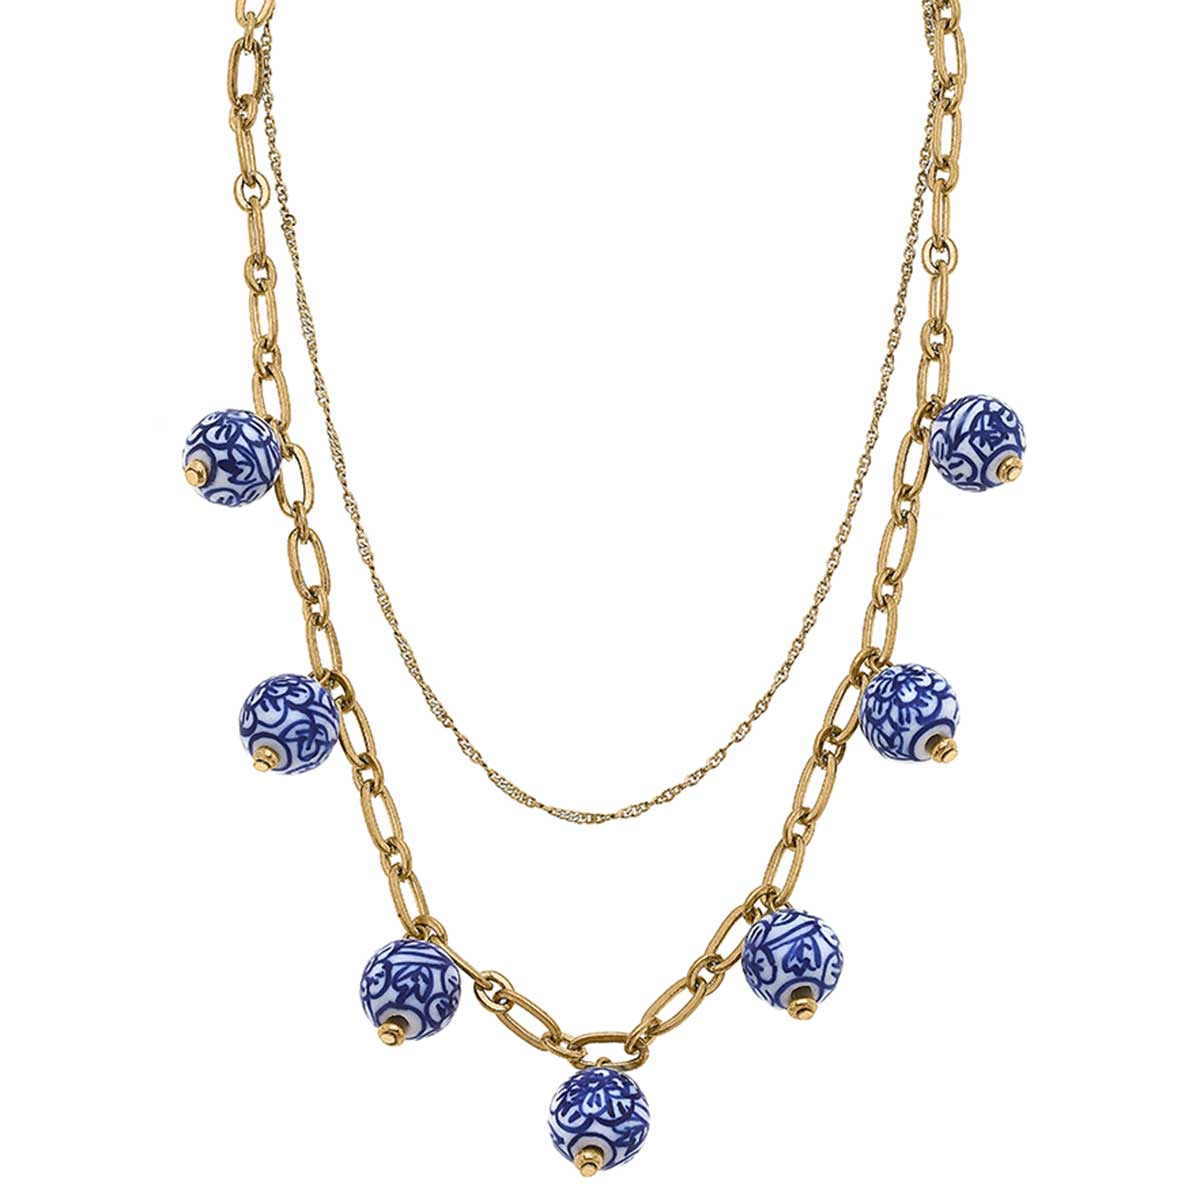 Paloma Chinoiserie Drip Necklace in Blue & White